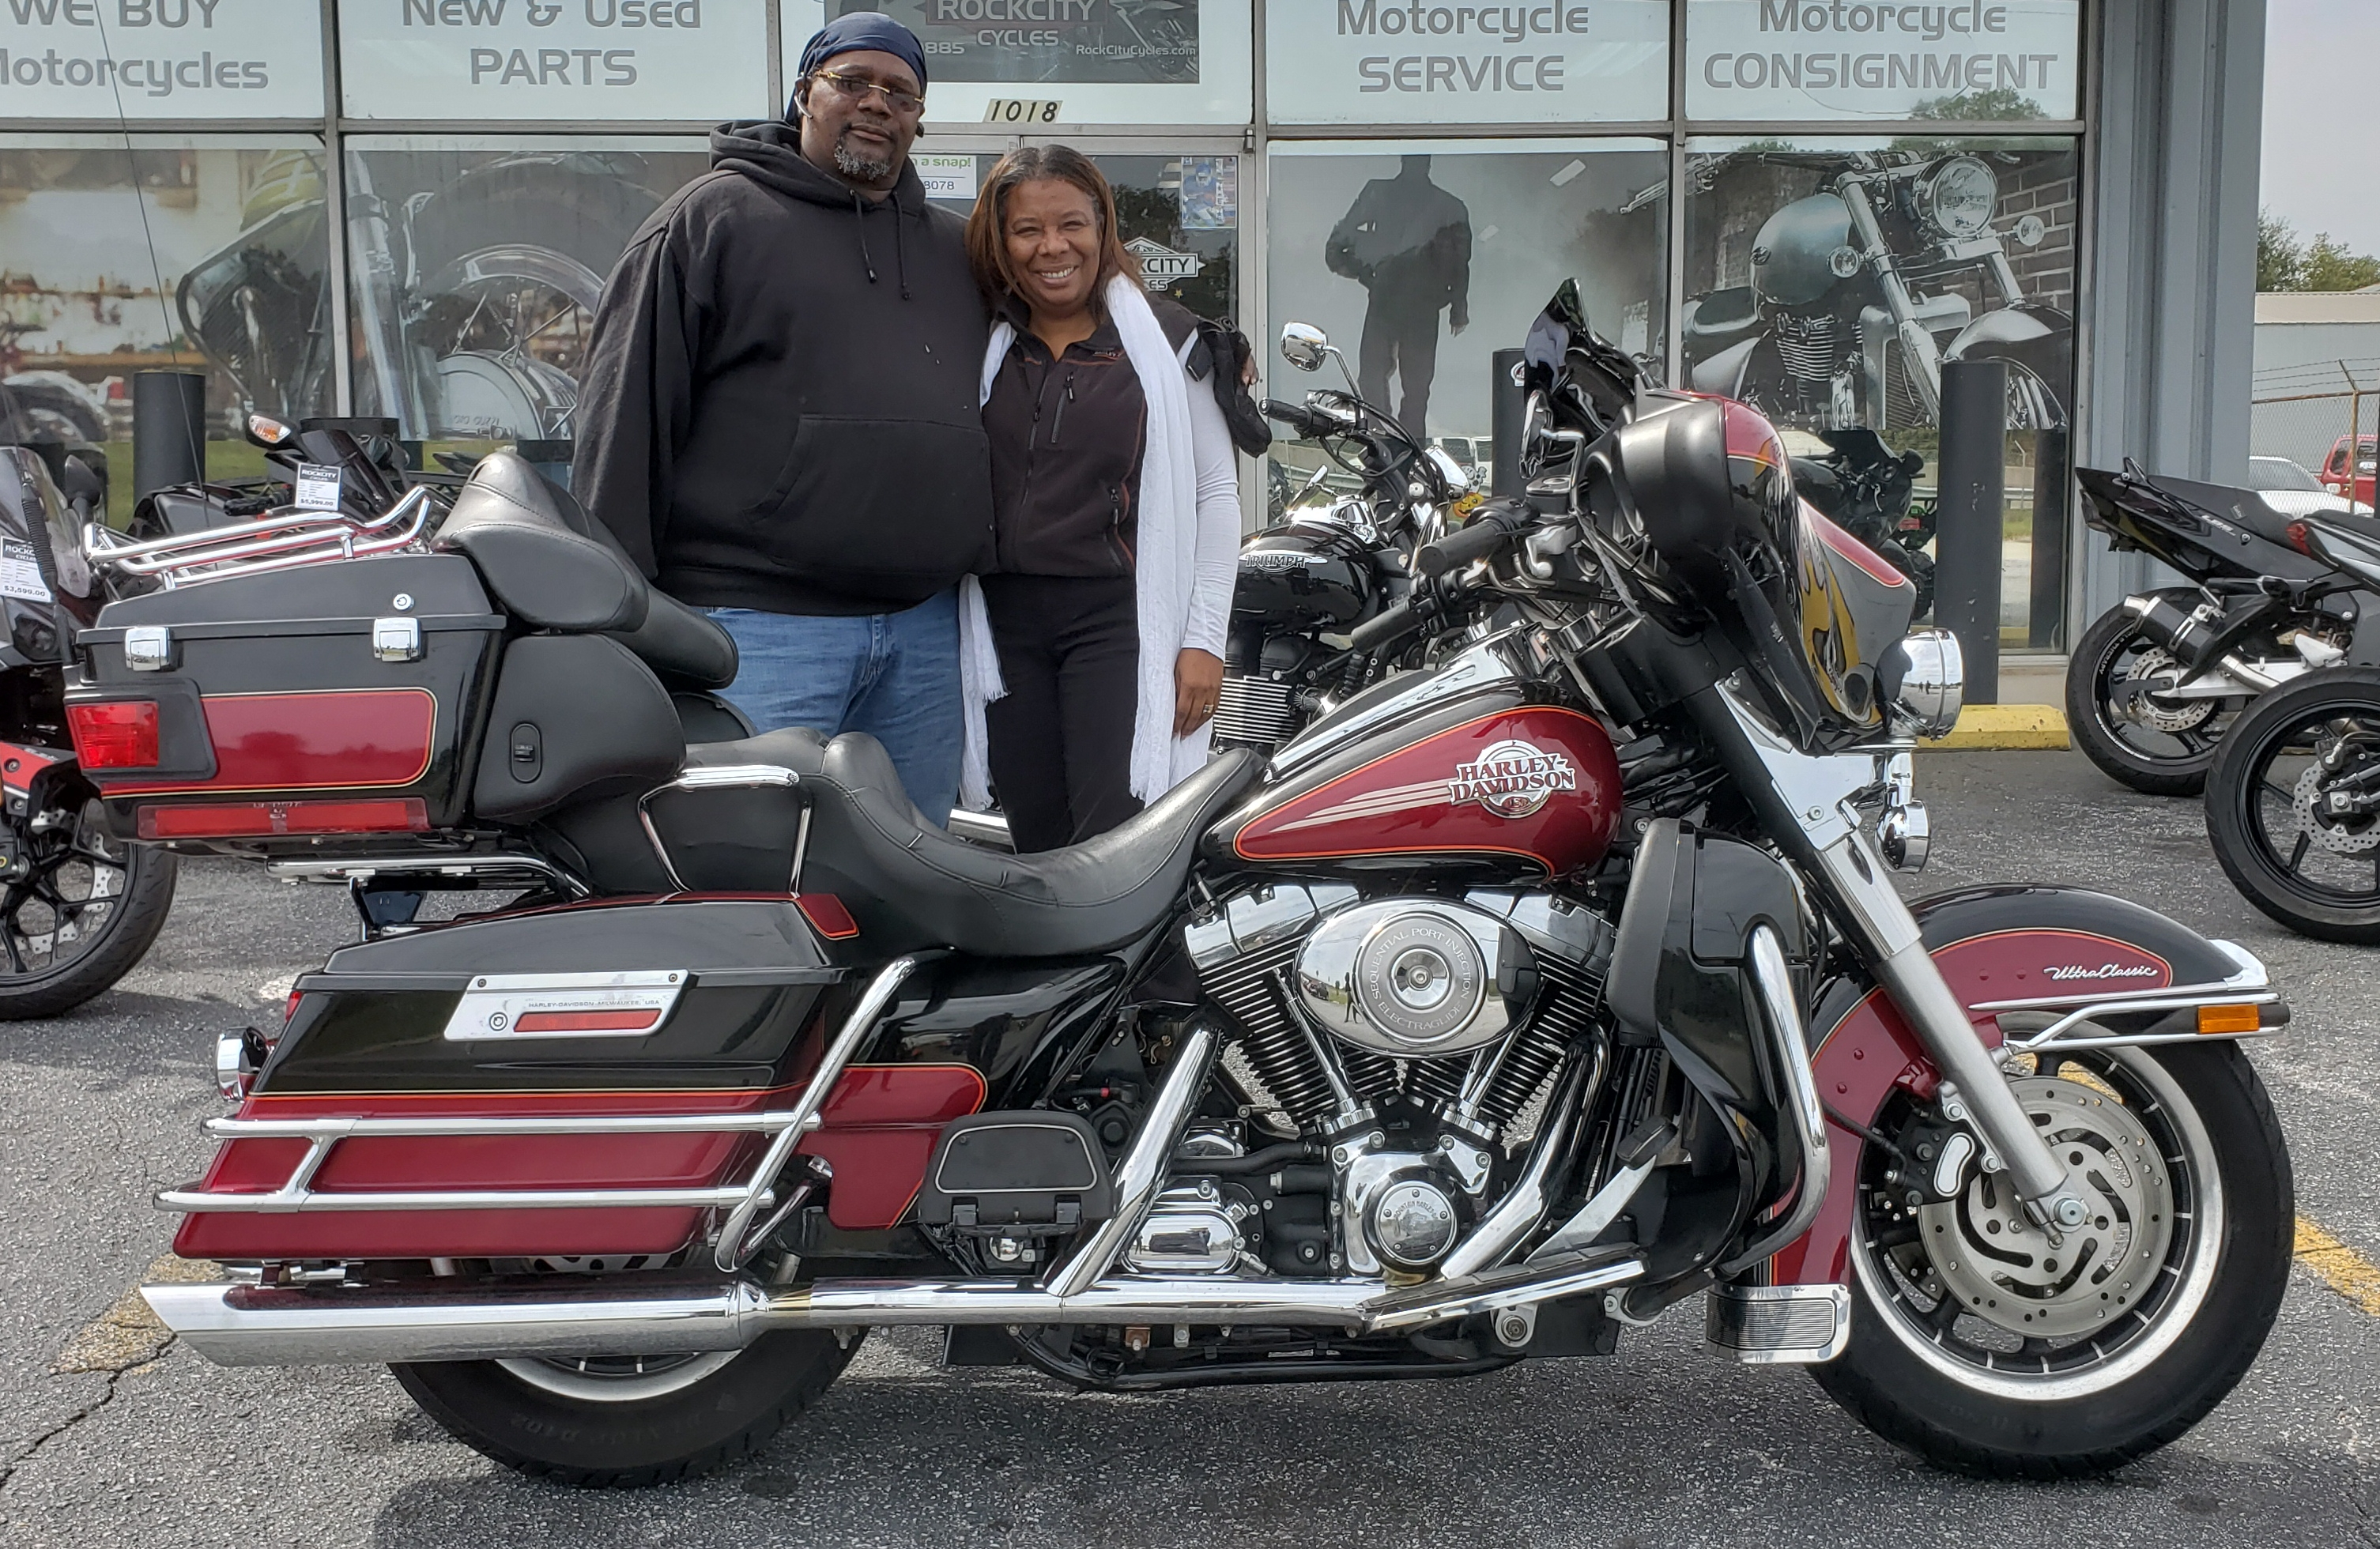 Travis L. with his 2005 Harley-Davidson Ultra Classic Electra Glide